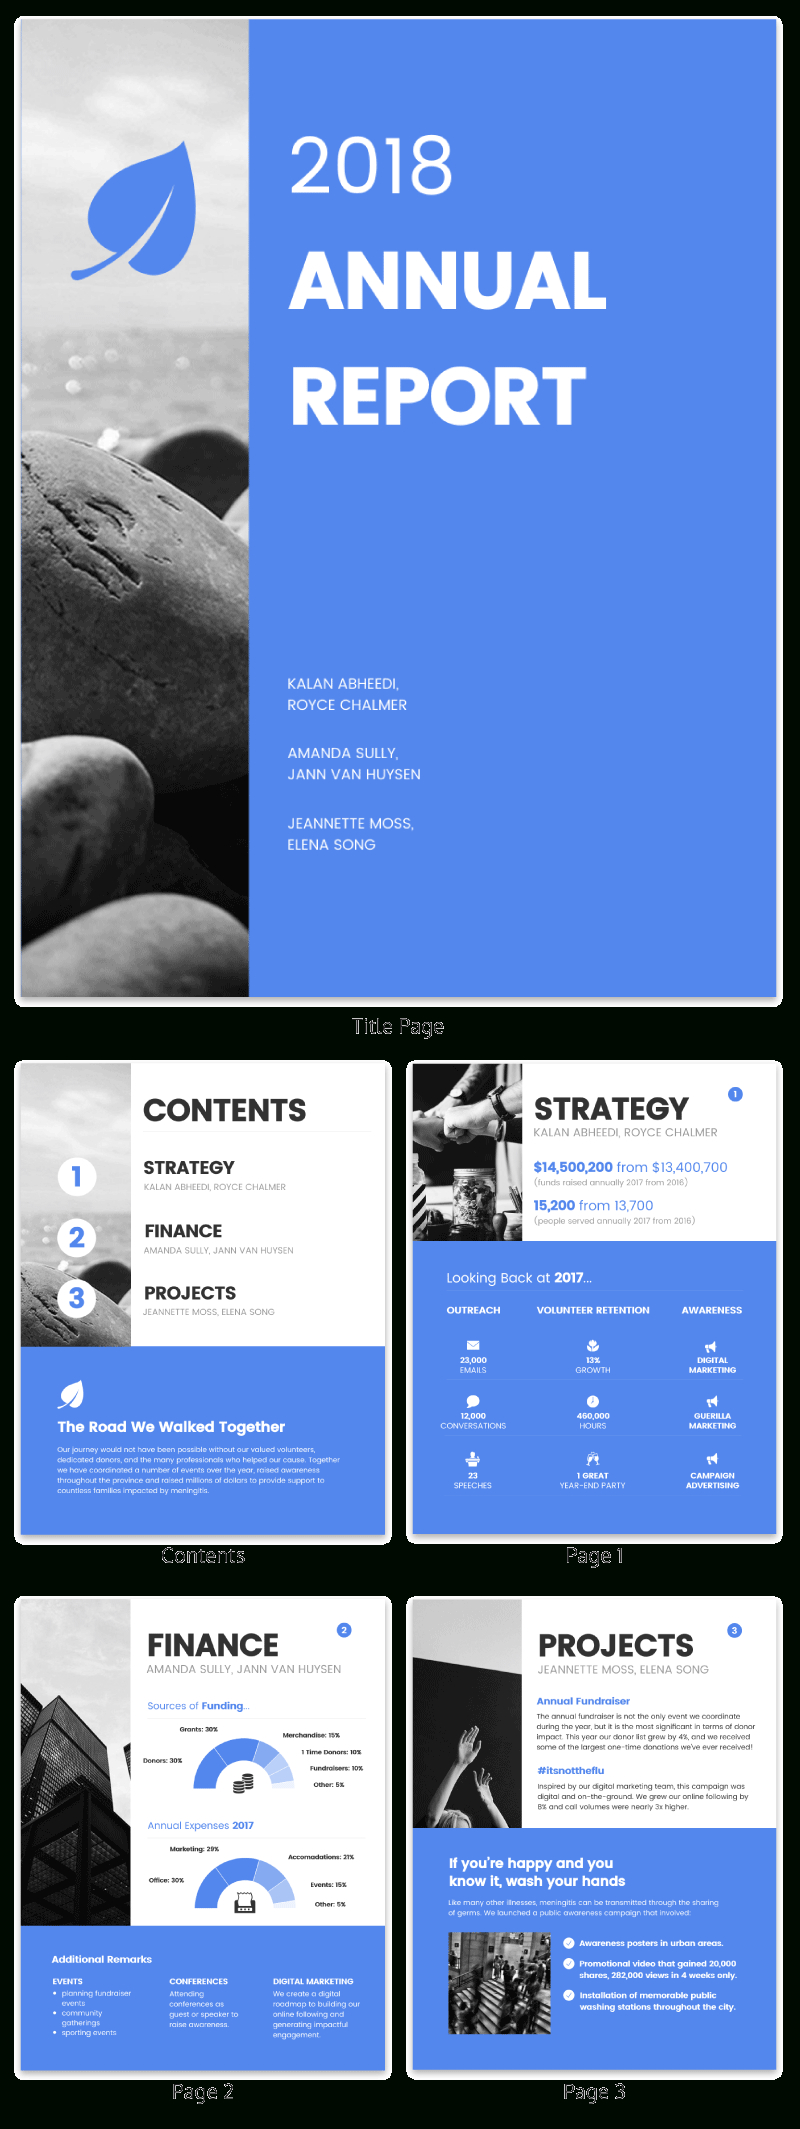 55+ Customizable Annual Report Design Templates, Examples & Tips Inside Annual Report Template Word